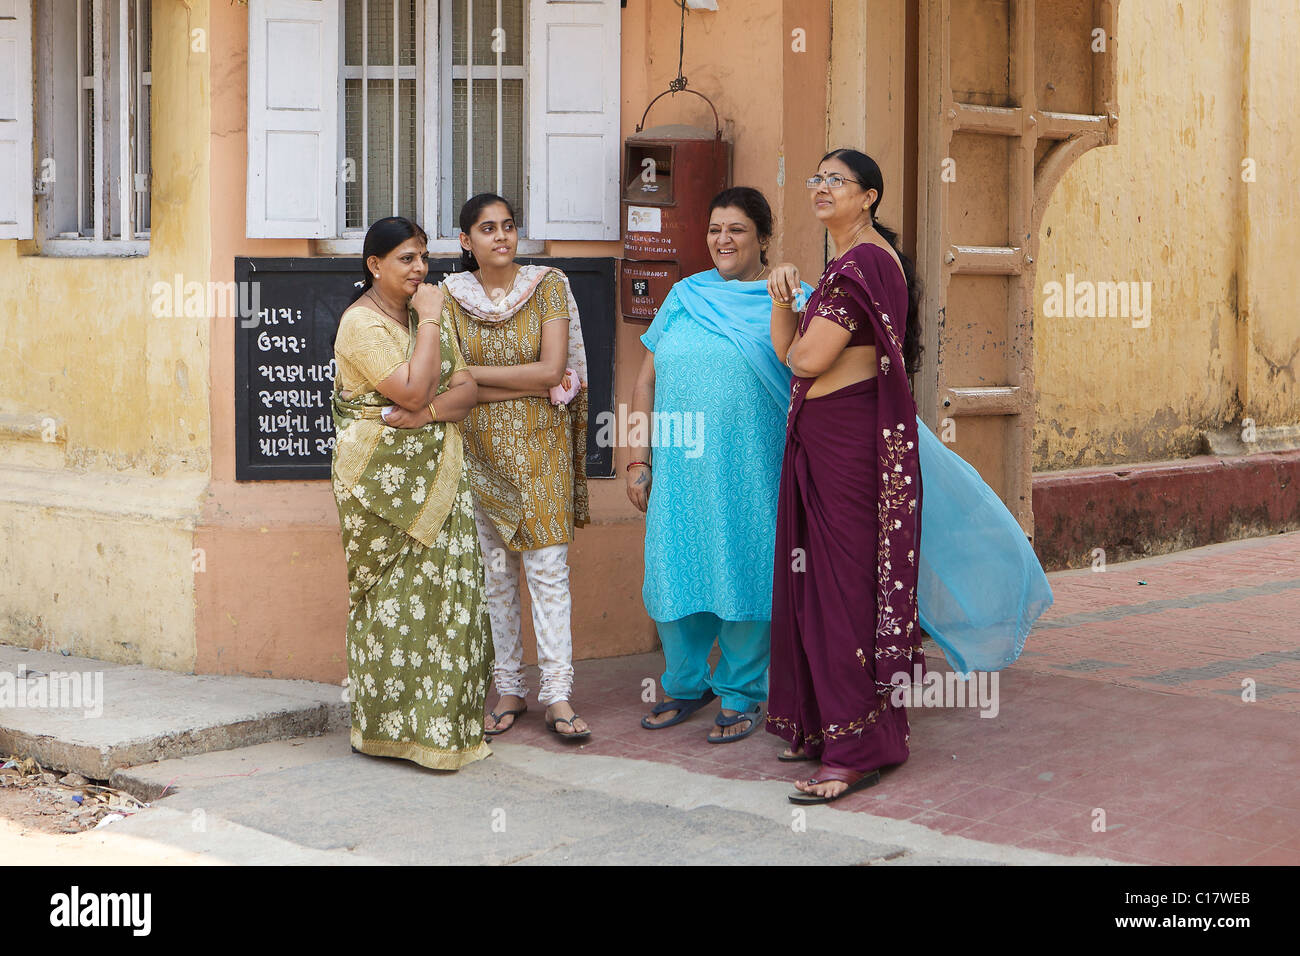 Women in Kochi, Kerala, India - Stock Image